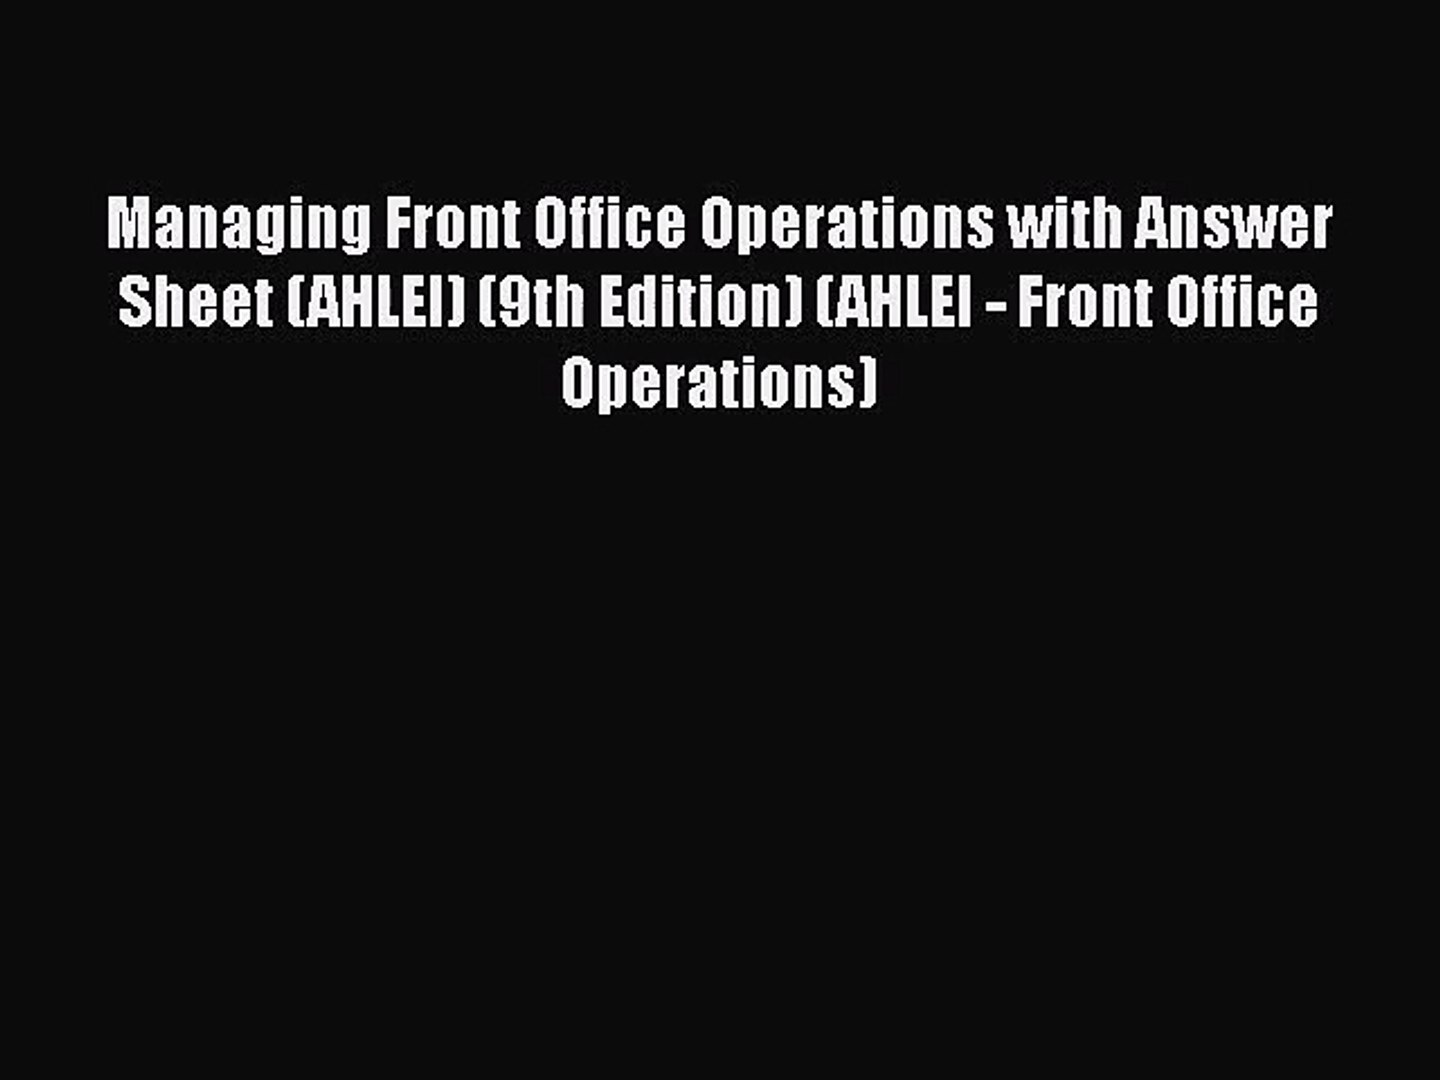 Managing Front Office Operations with Answer Sheet (AHLEI) (9th Edition) (AHLEI - Front Office